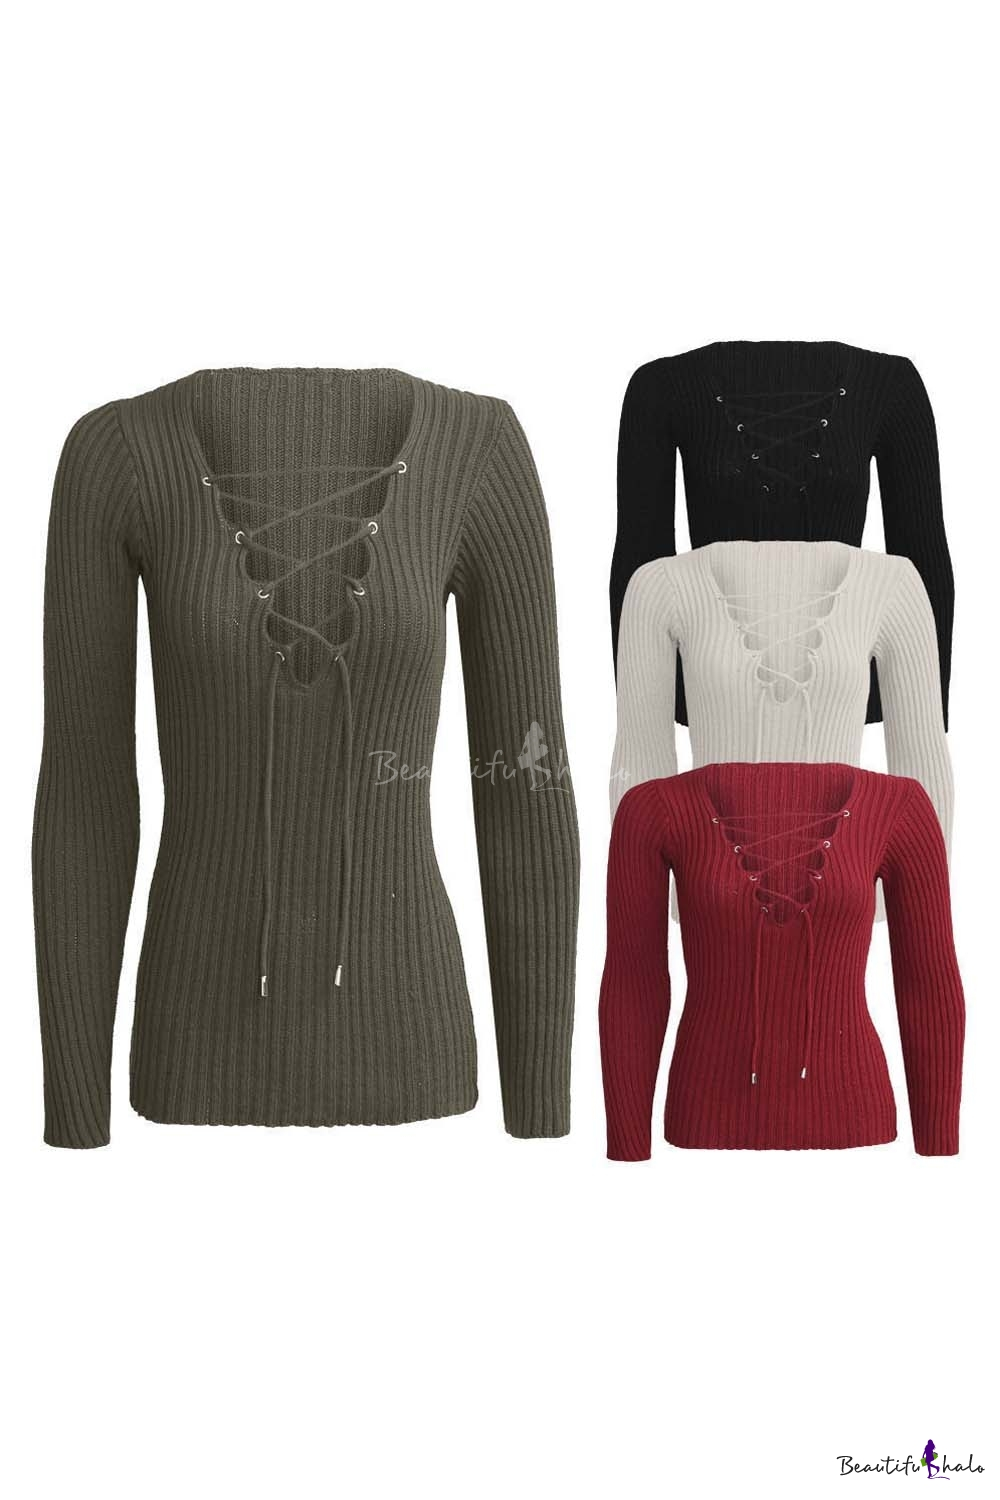 Buy Women's Sexy Lace-up Deep -neck Long Sleeve Knitted Top Sweater